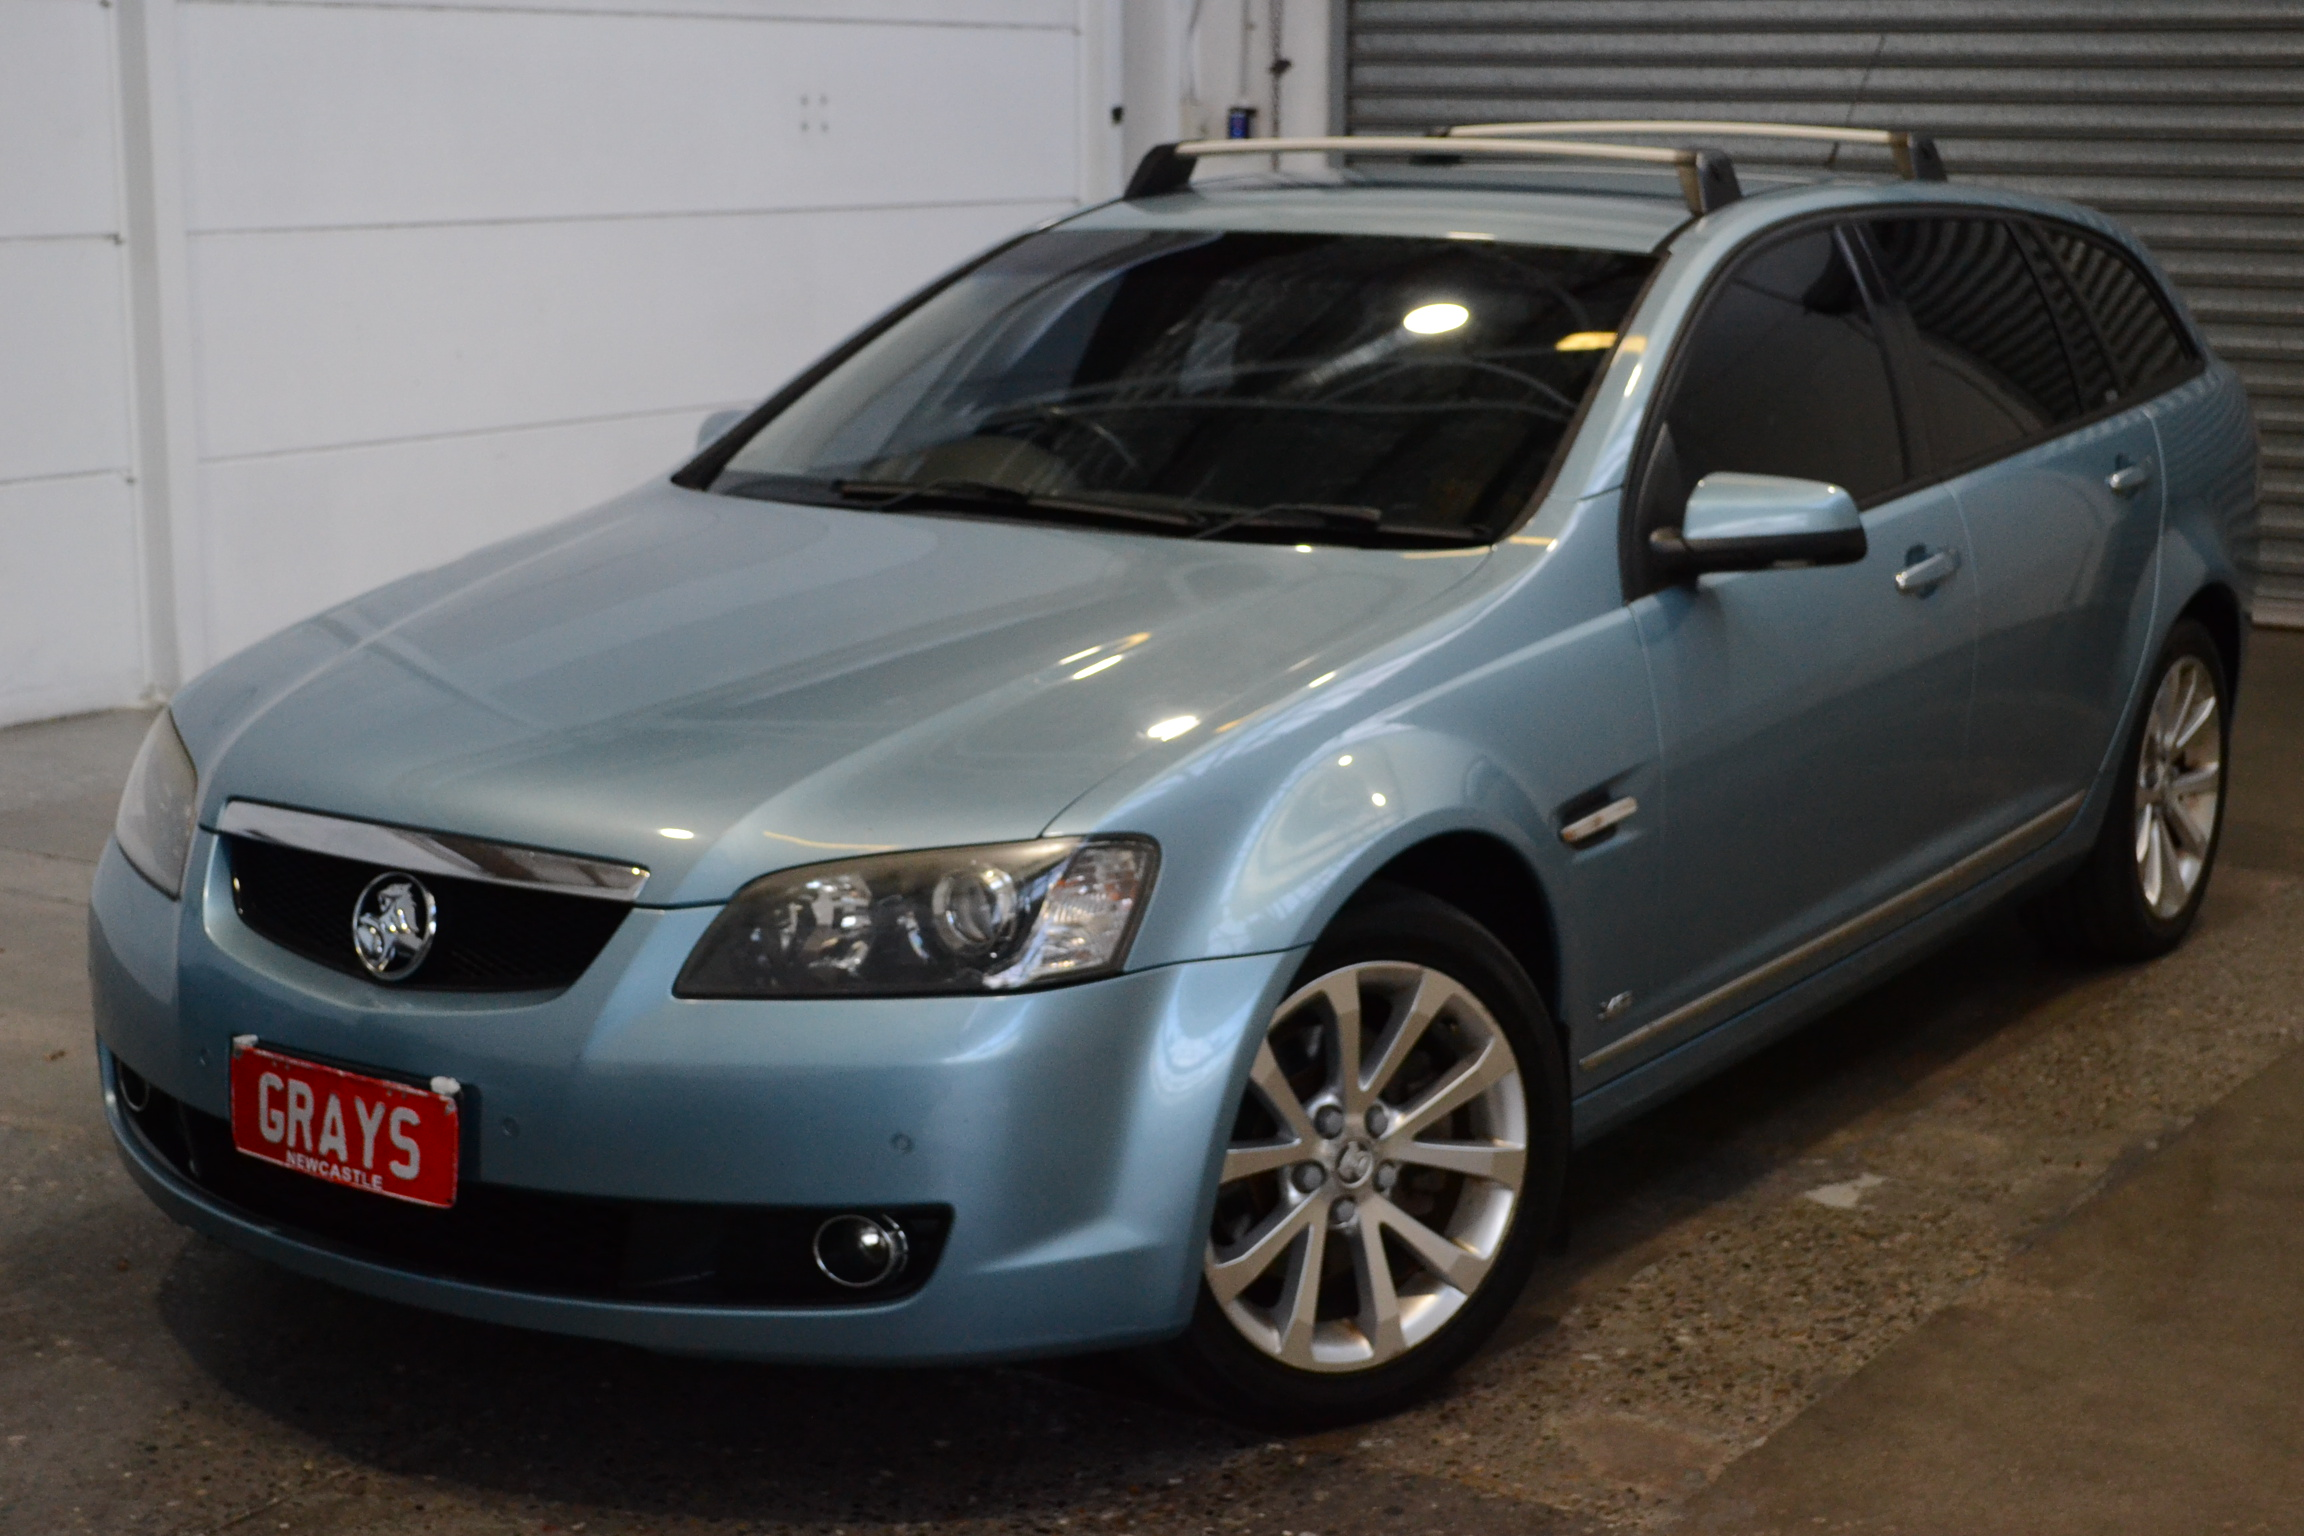 2008 Holden Calais V VE Automatic Wagon